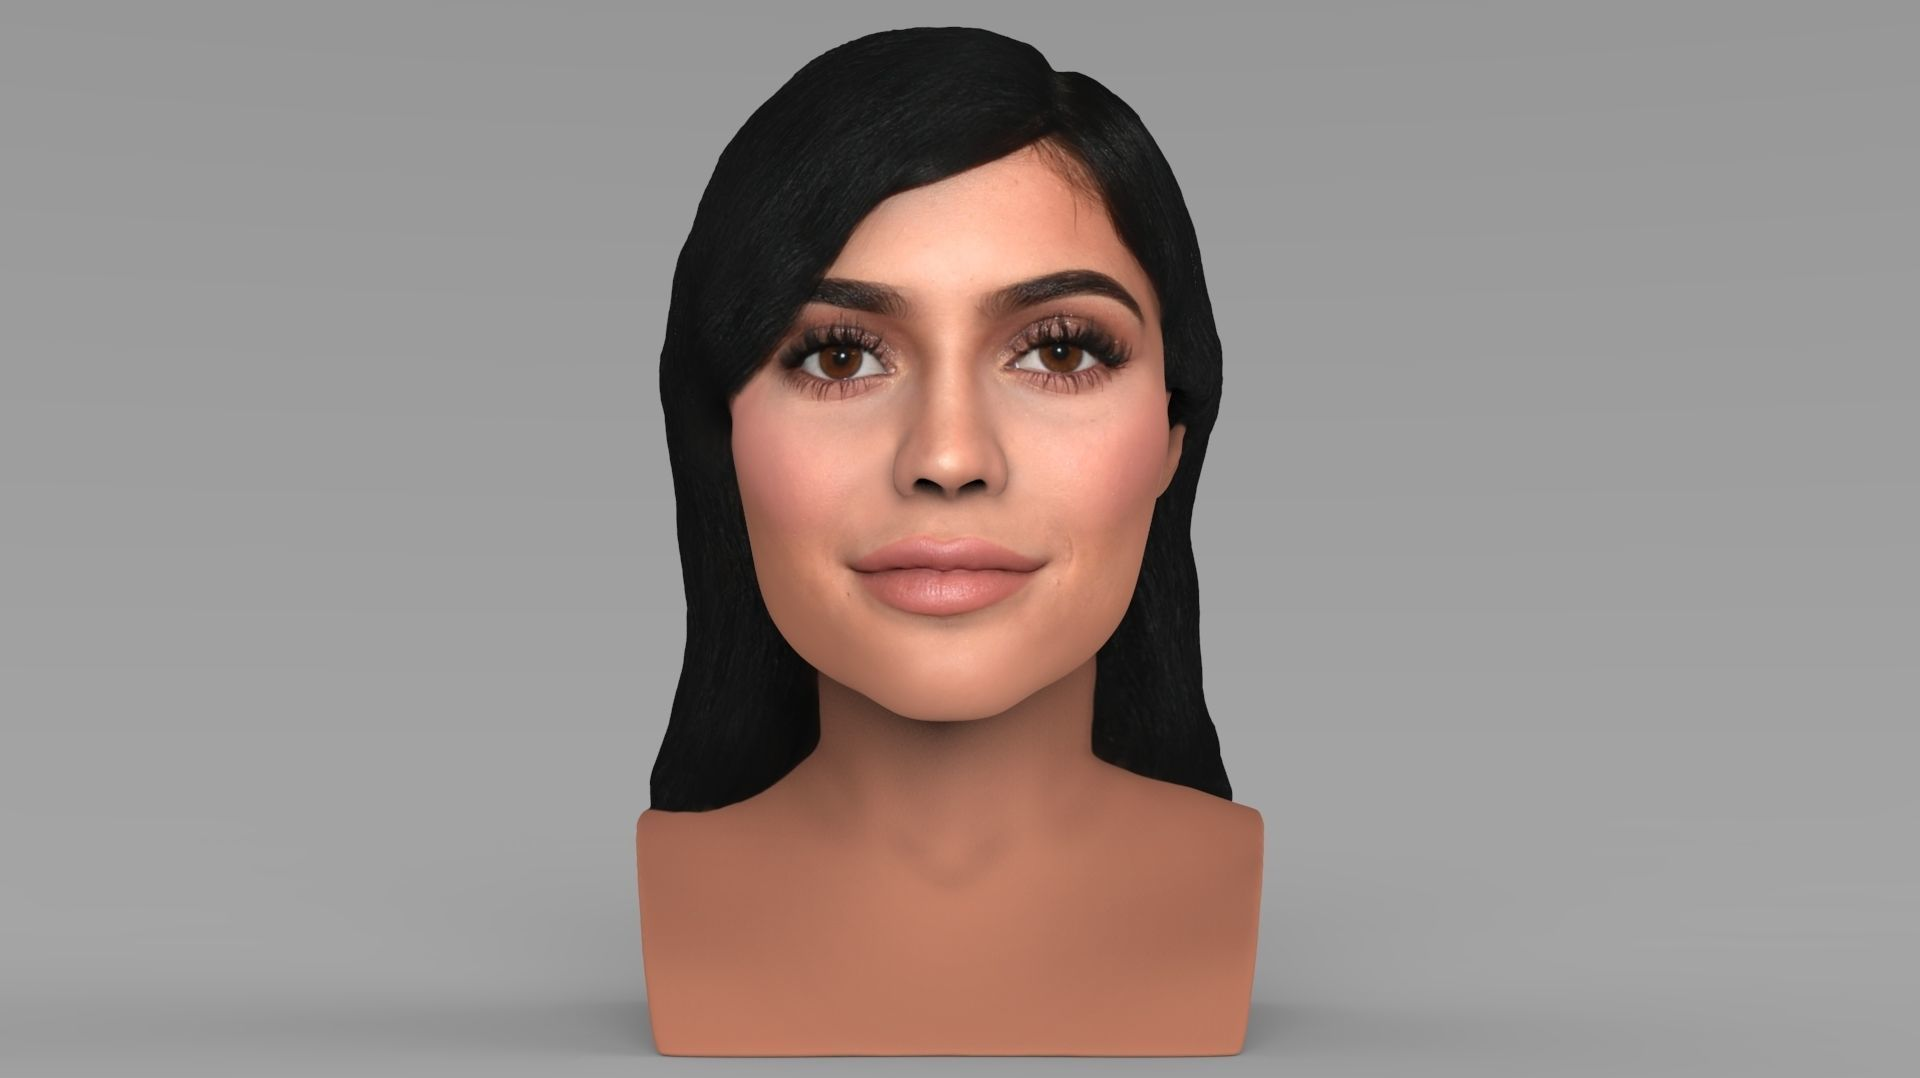 Kylie Jenner bust ready for full color 3D printing